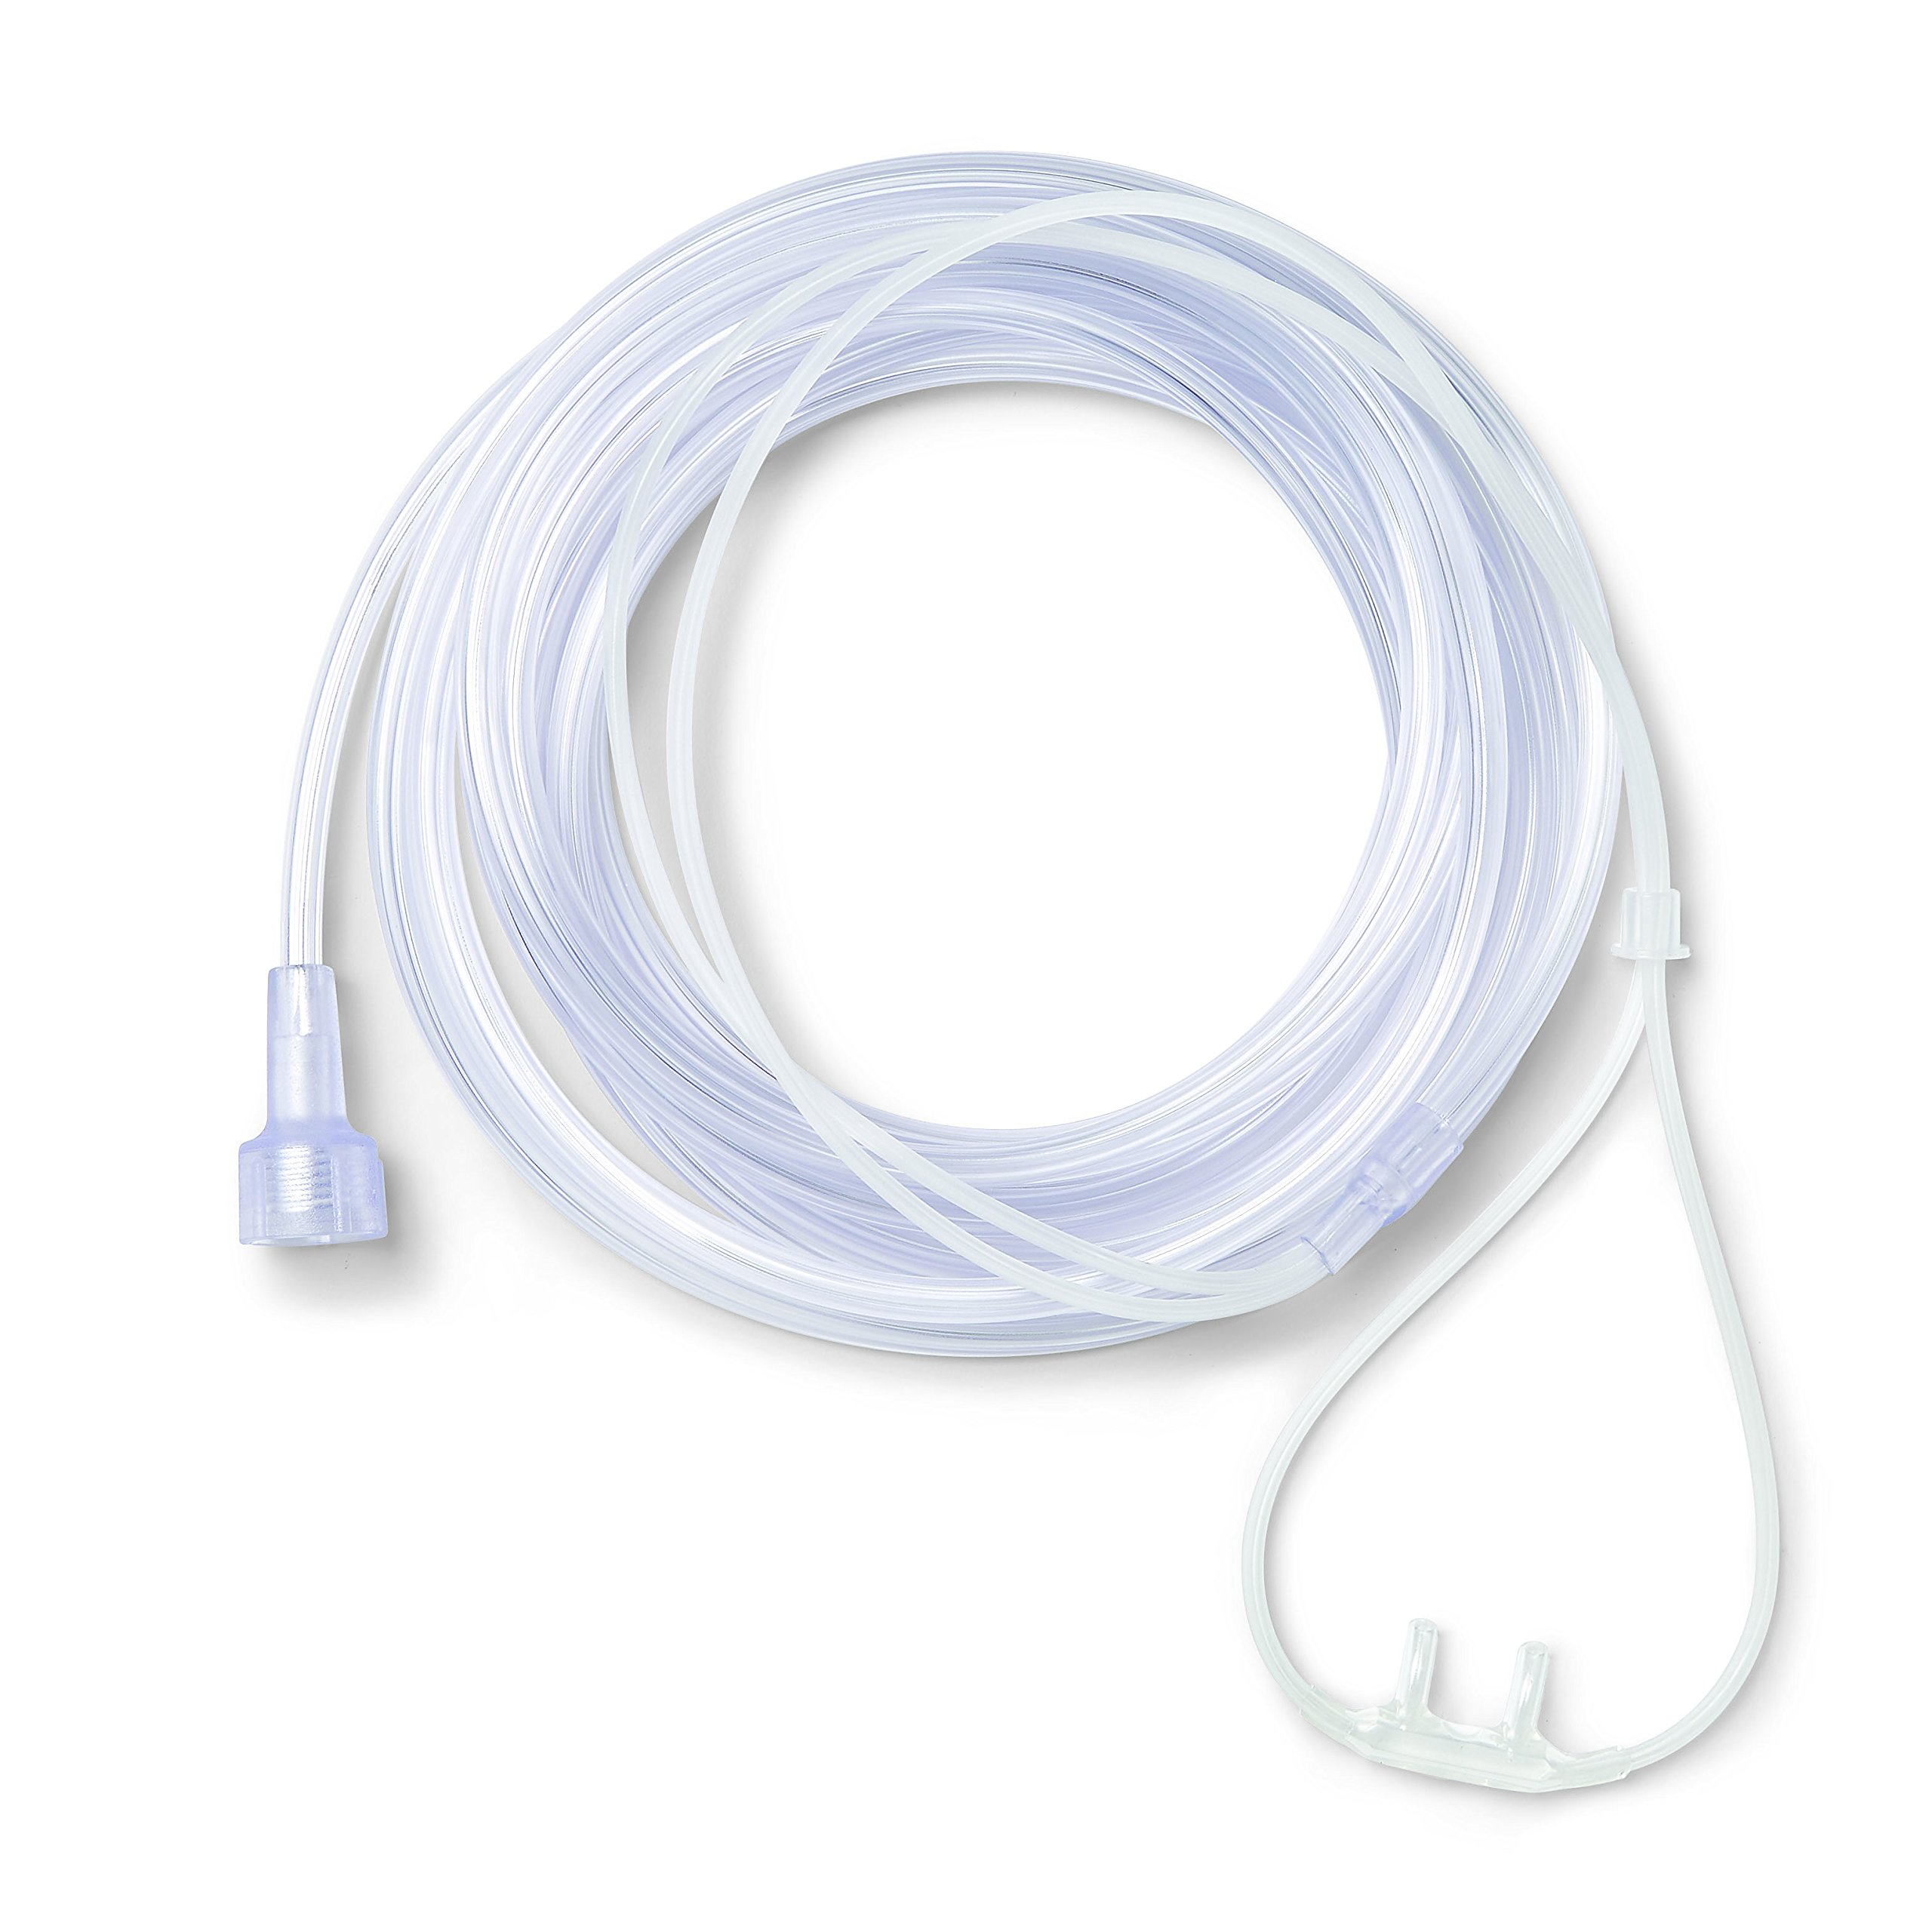 Medline SuperSoft Nasal Oxygen Cannula, Universal Connector, 14-Foot Tubing, Adult Size, Pack of 50